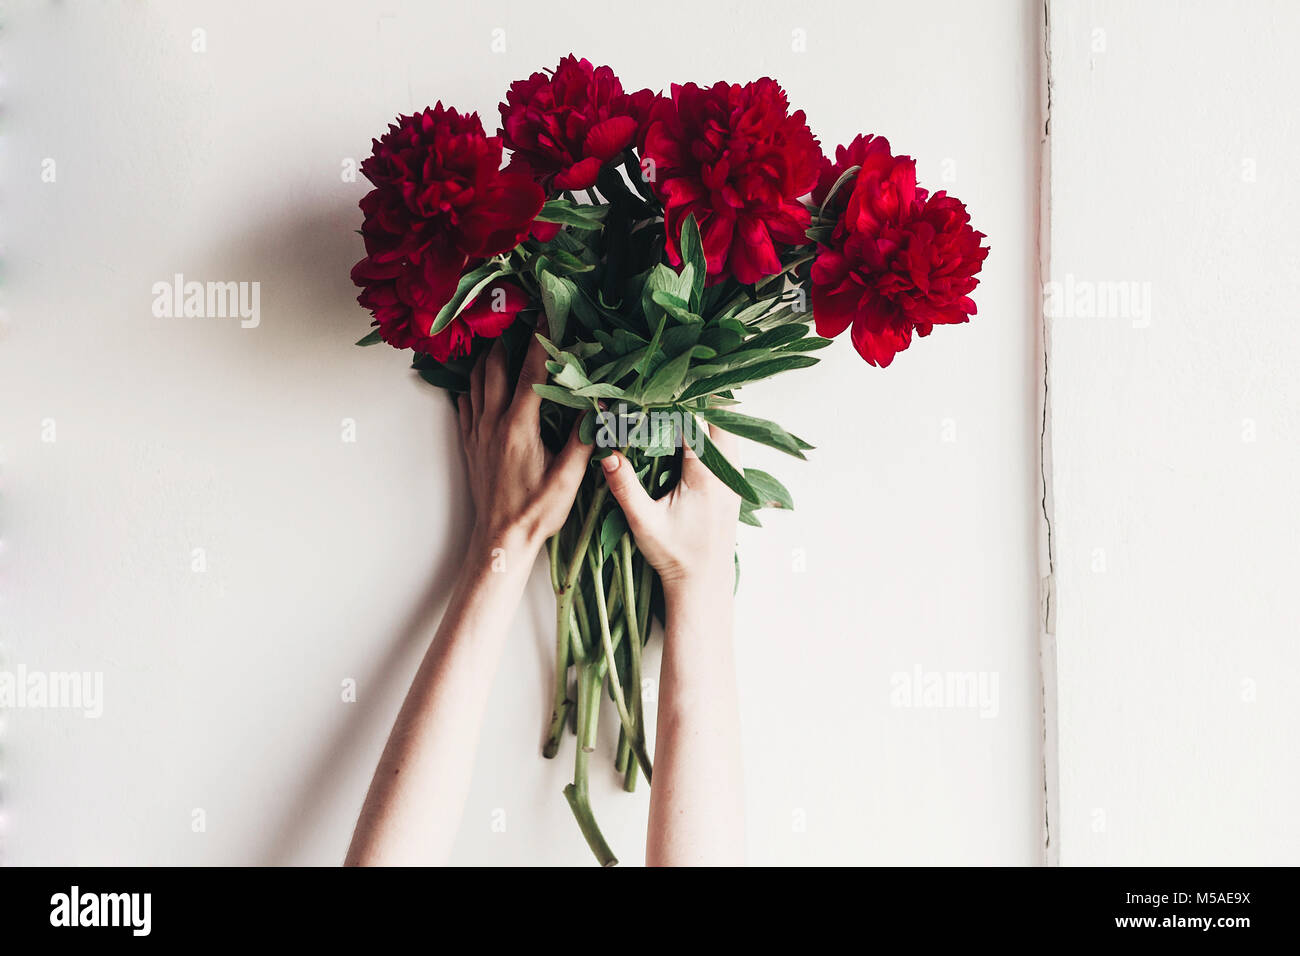 Hands Holding Beautiful Red Peonies Bouquet On Rustic White Stock Photo Alamy